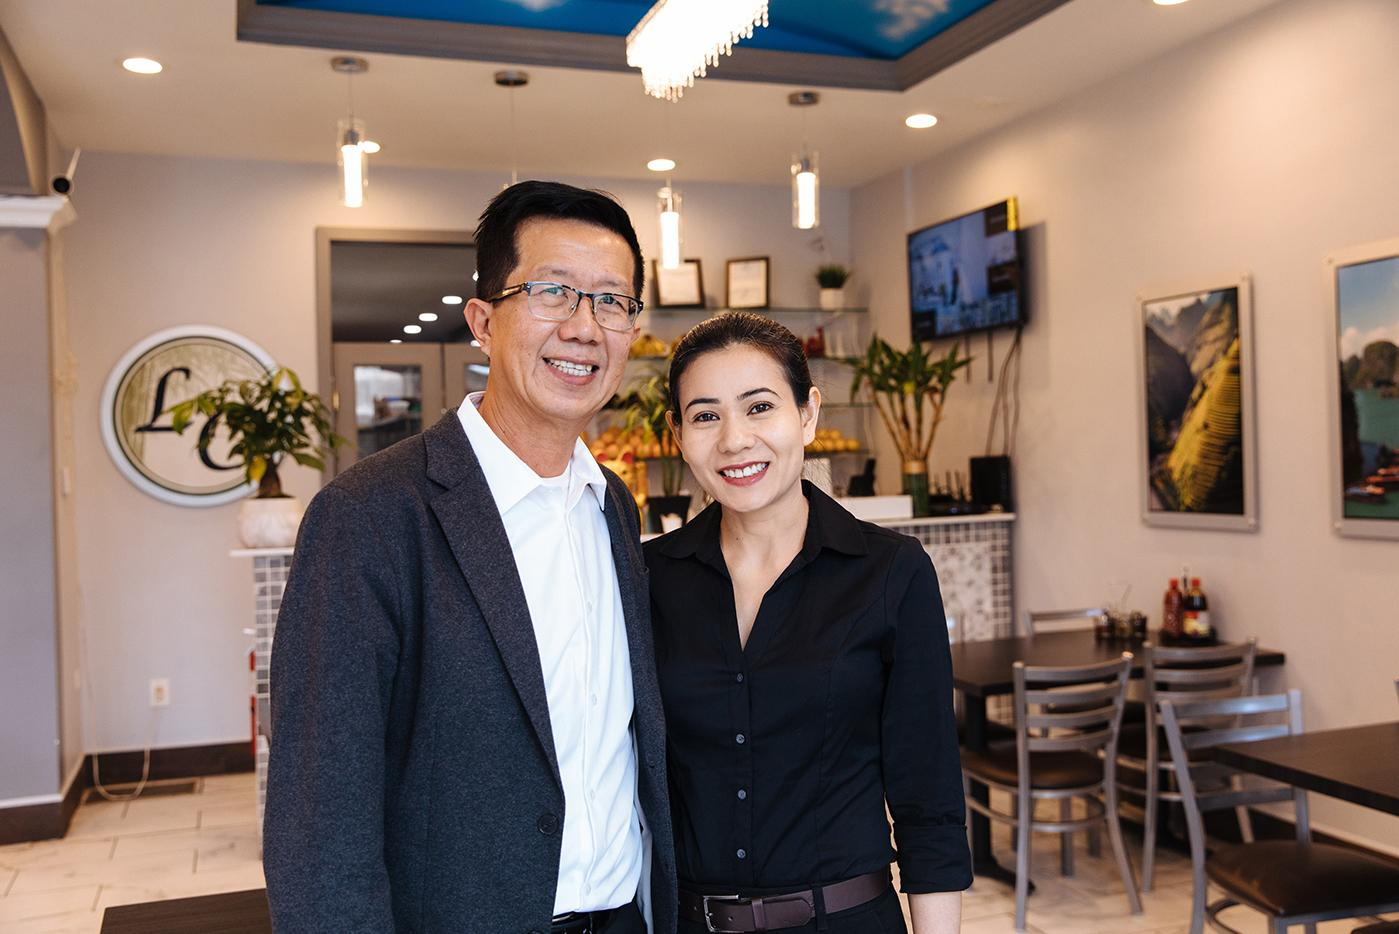 Torrance Ly and Lieu Nguyen at their restaurant in Chicago, LC Pho n Grill. Photo: Sandy Noto for WTTW